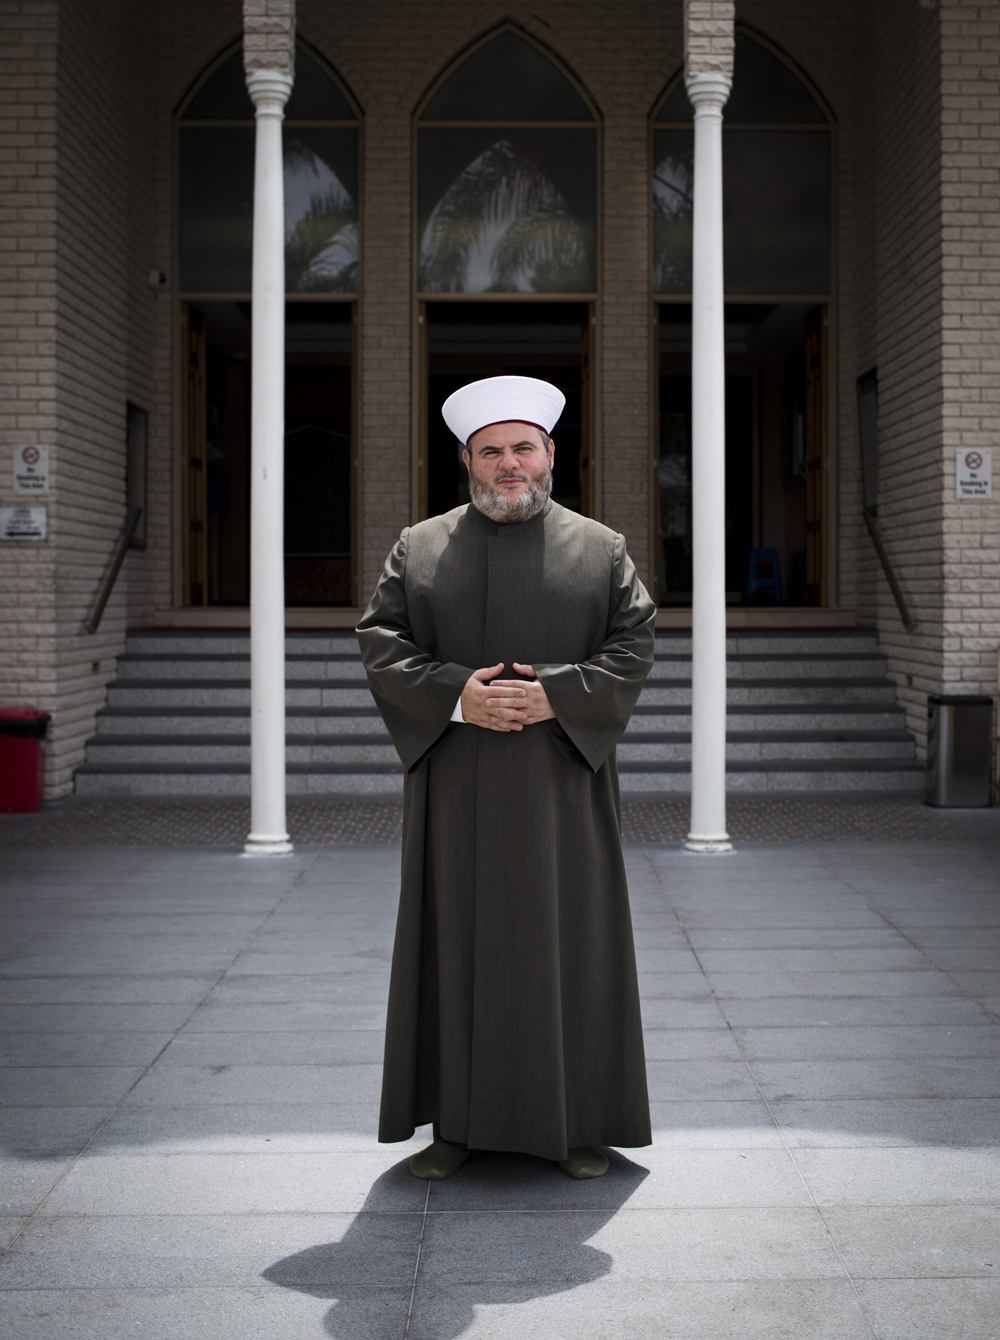 Sheikh Yahya Safi outside the Lakemba Mosque in Sydney.